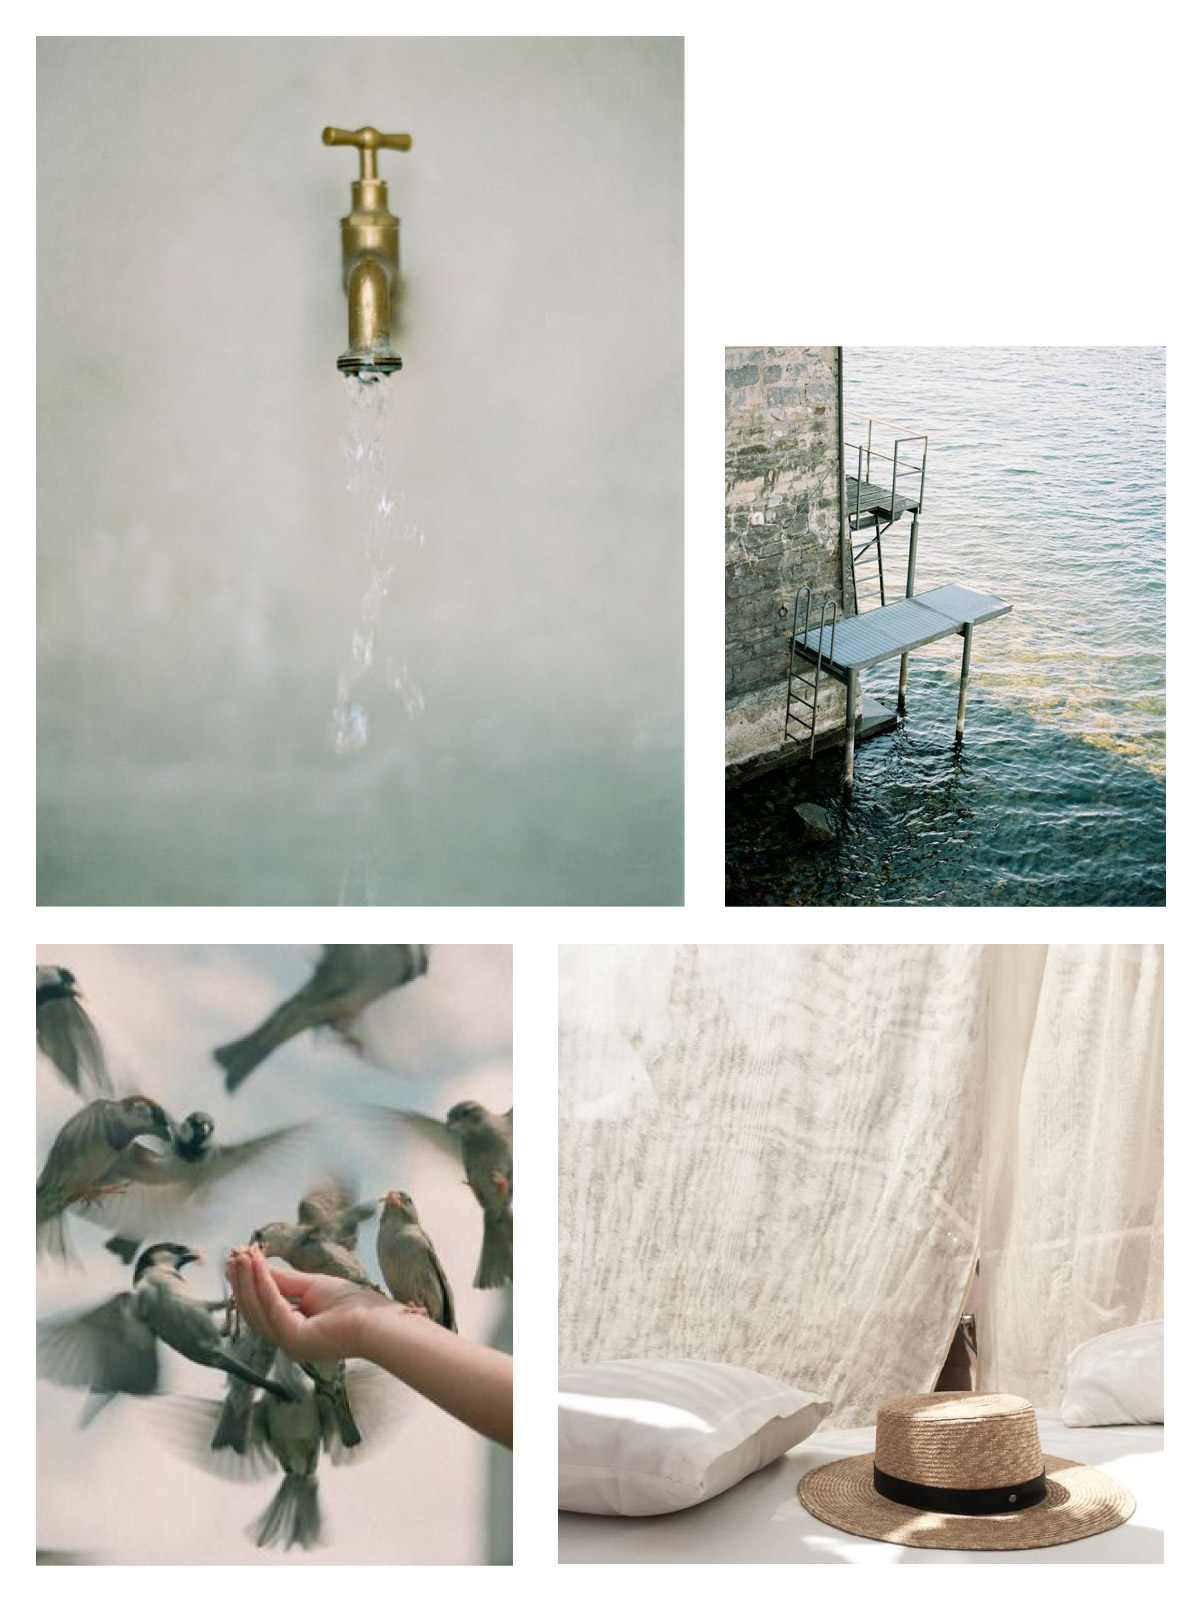 Inspiration board for a Seattle engagement session inspired by travels abroad